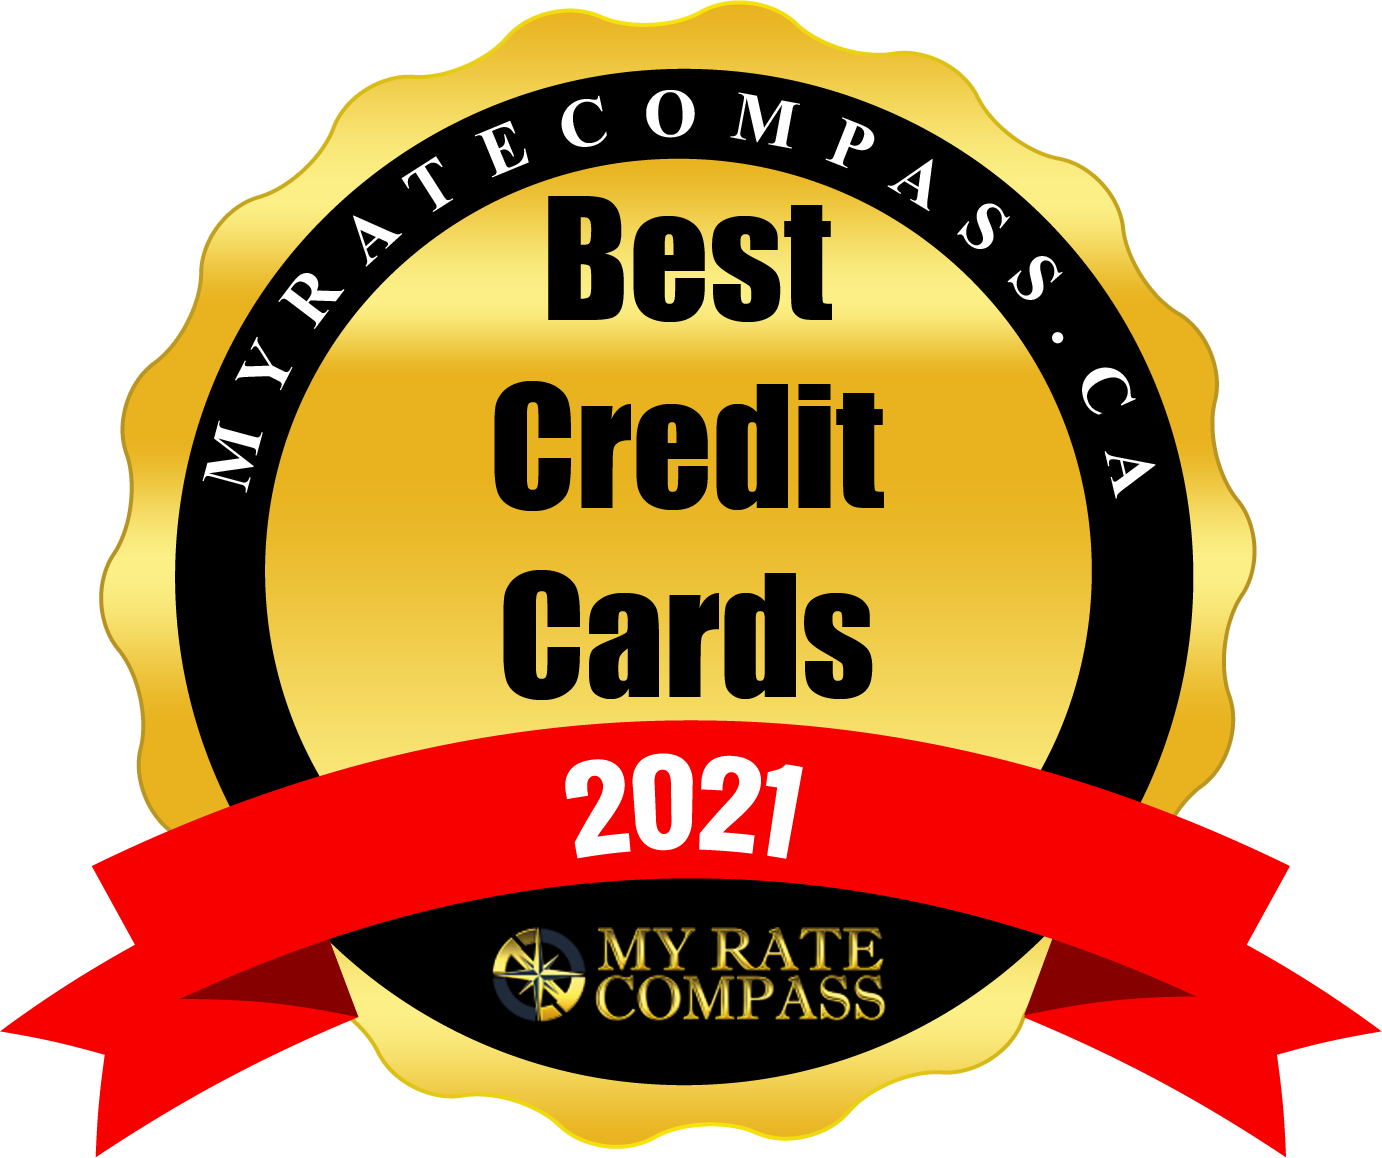 Best Credit Cards in Canada for 2021 | My Rate Compass